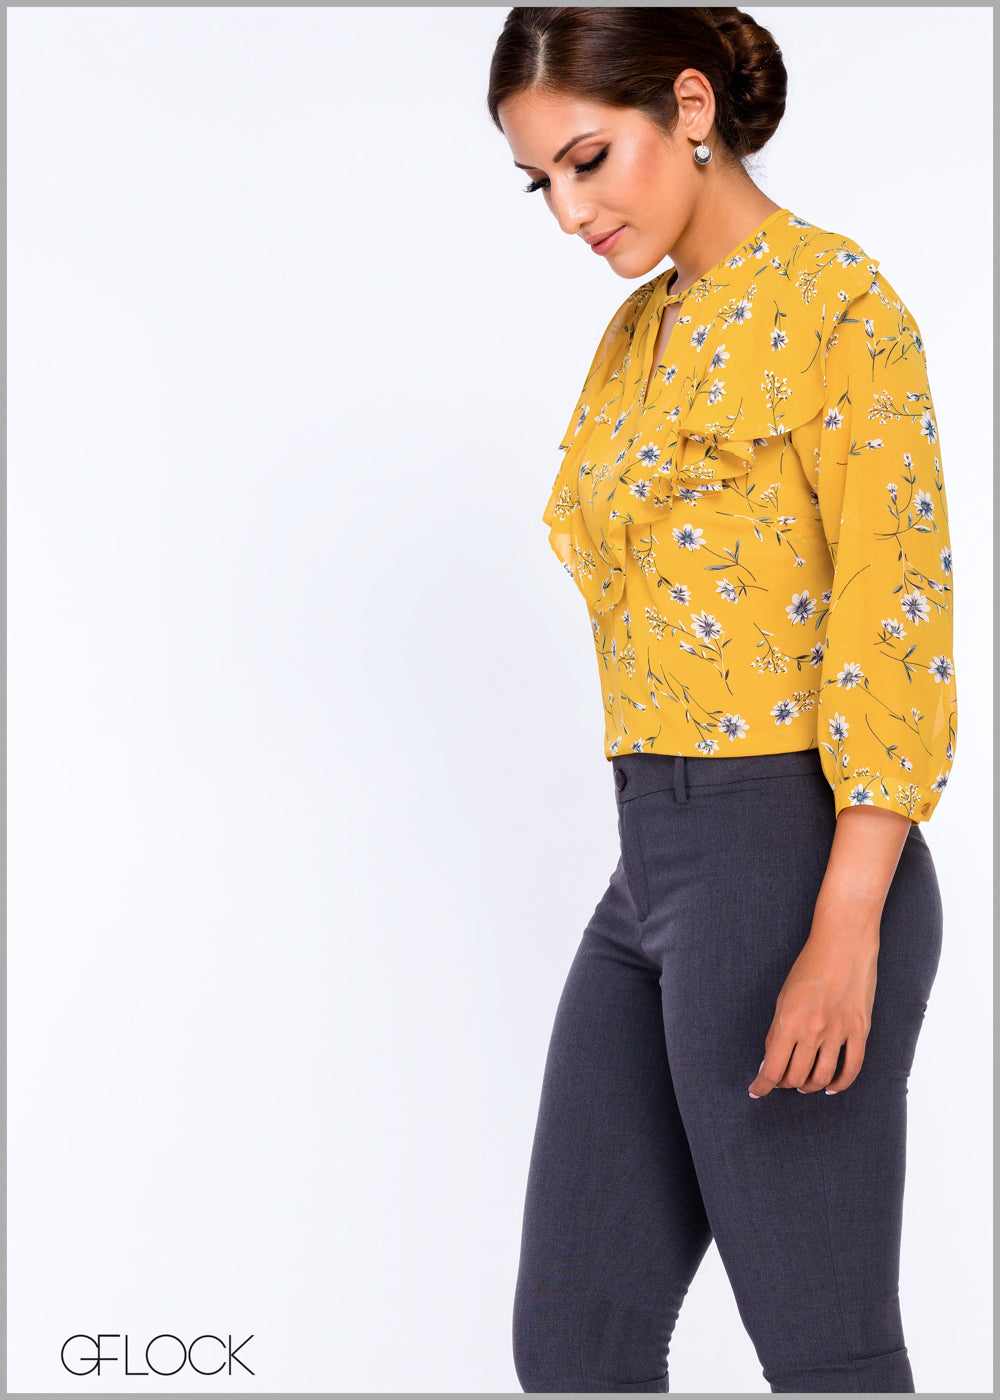 Floral Printed Workwear Top